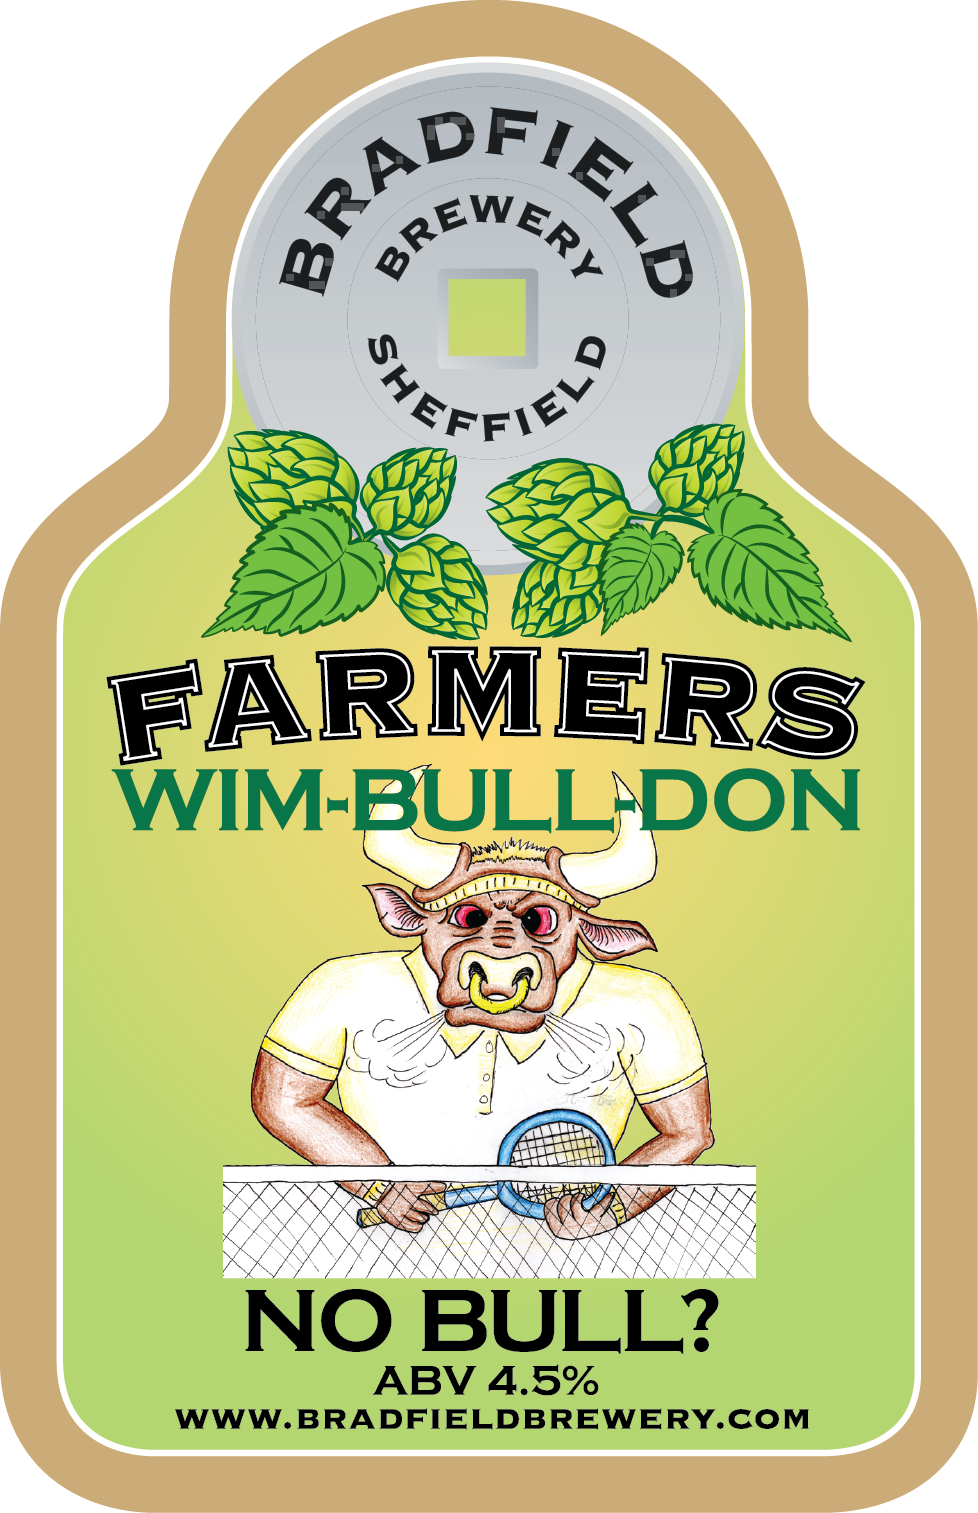 Farmers Wim-Bull-Don Ale